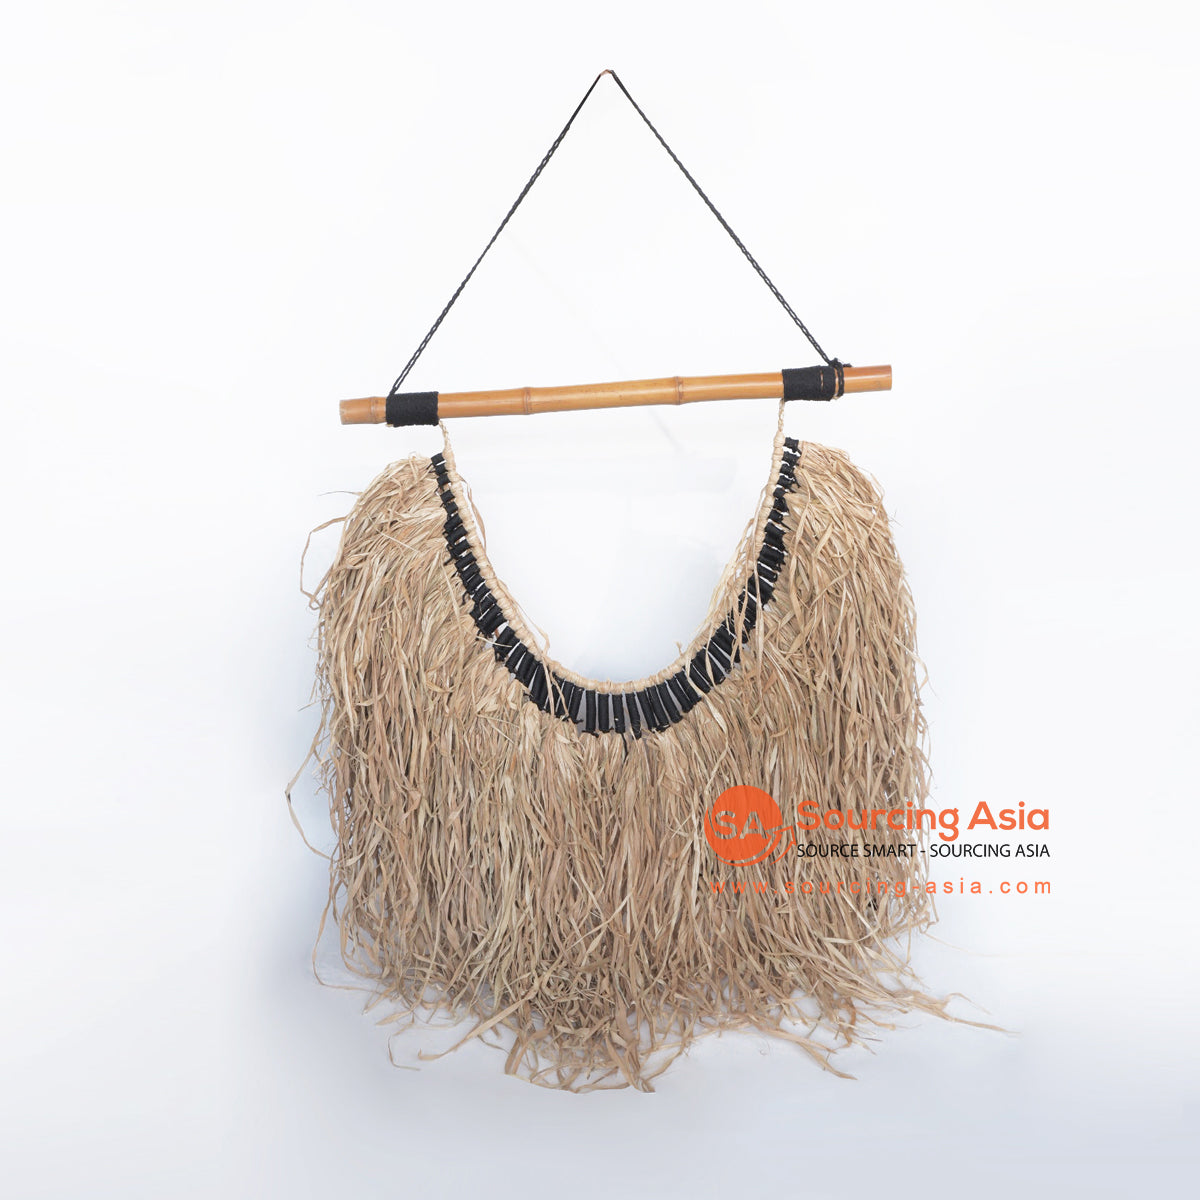 MRC301 NATURAL RATTAN AND PALM RAFFIA WALL DECORATION WITH BLACK ROPE